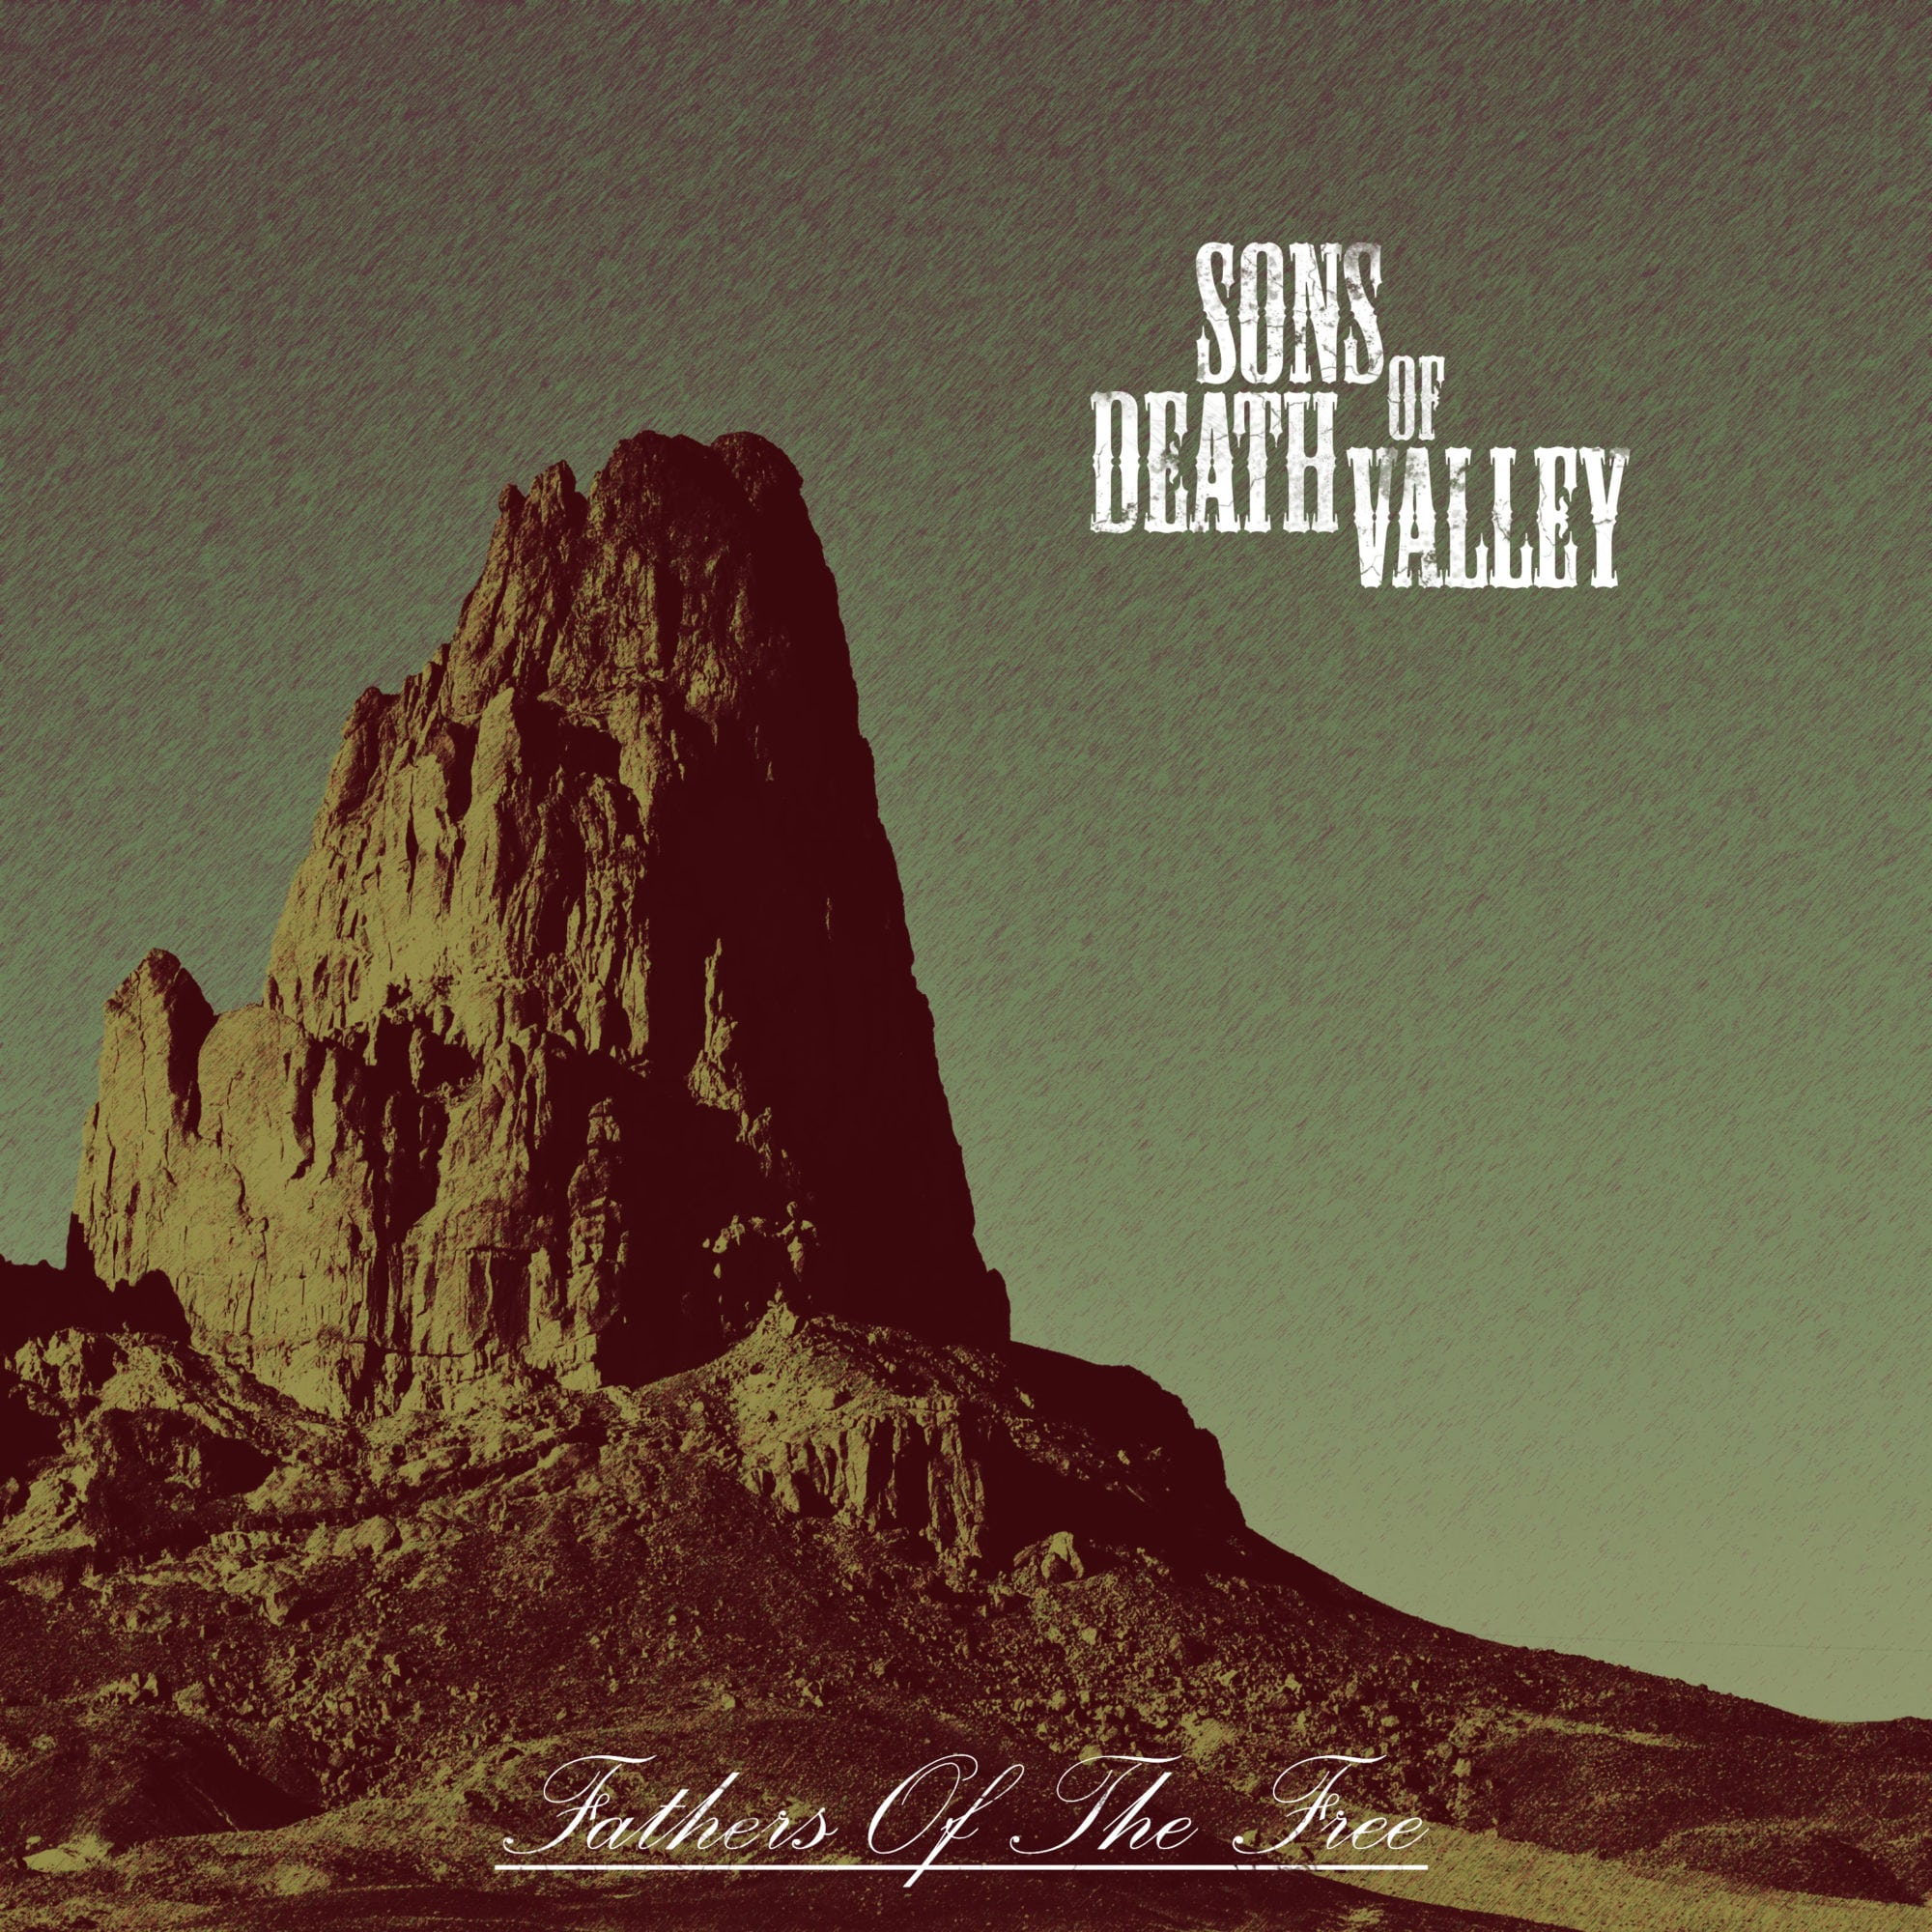 Sons of Death Valley – Fathers of The Free